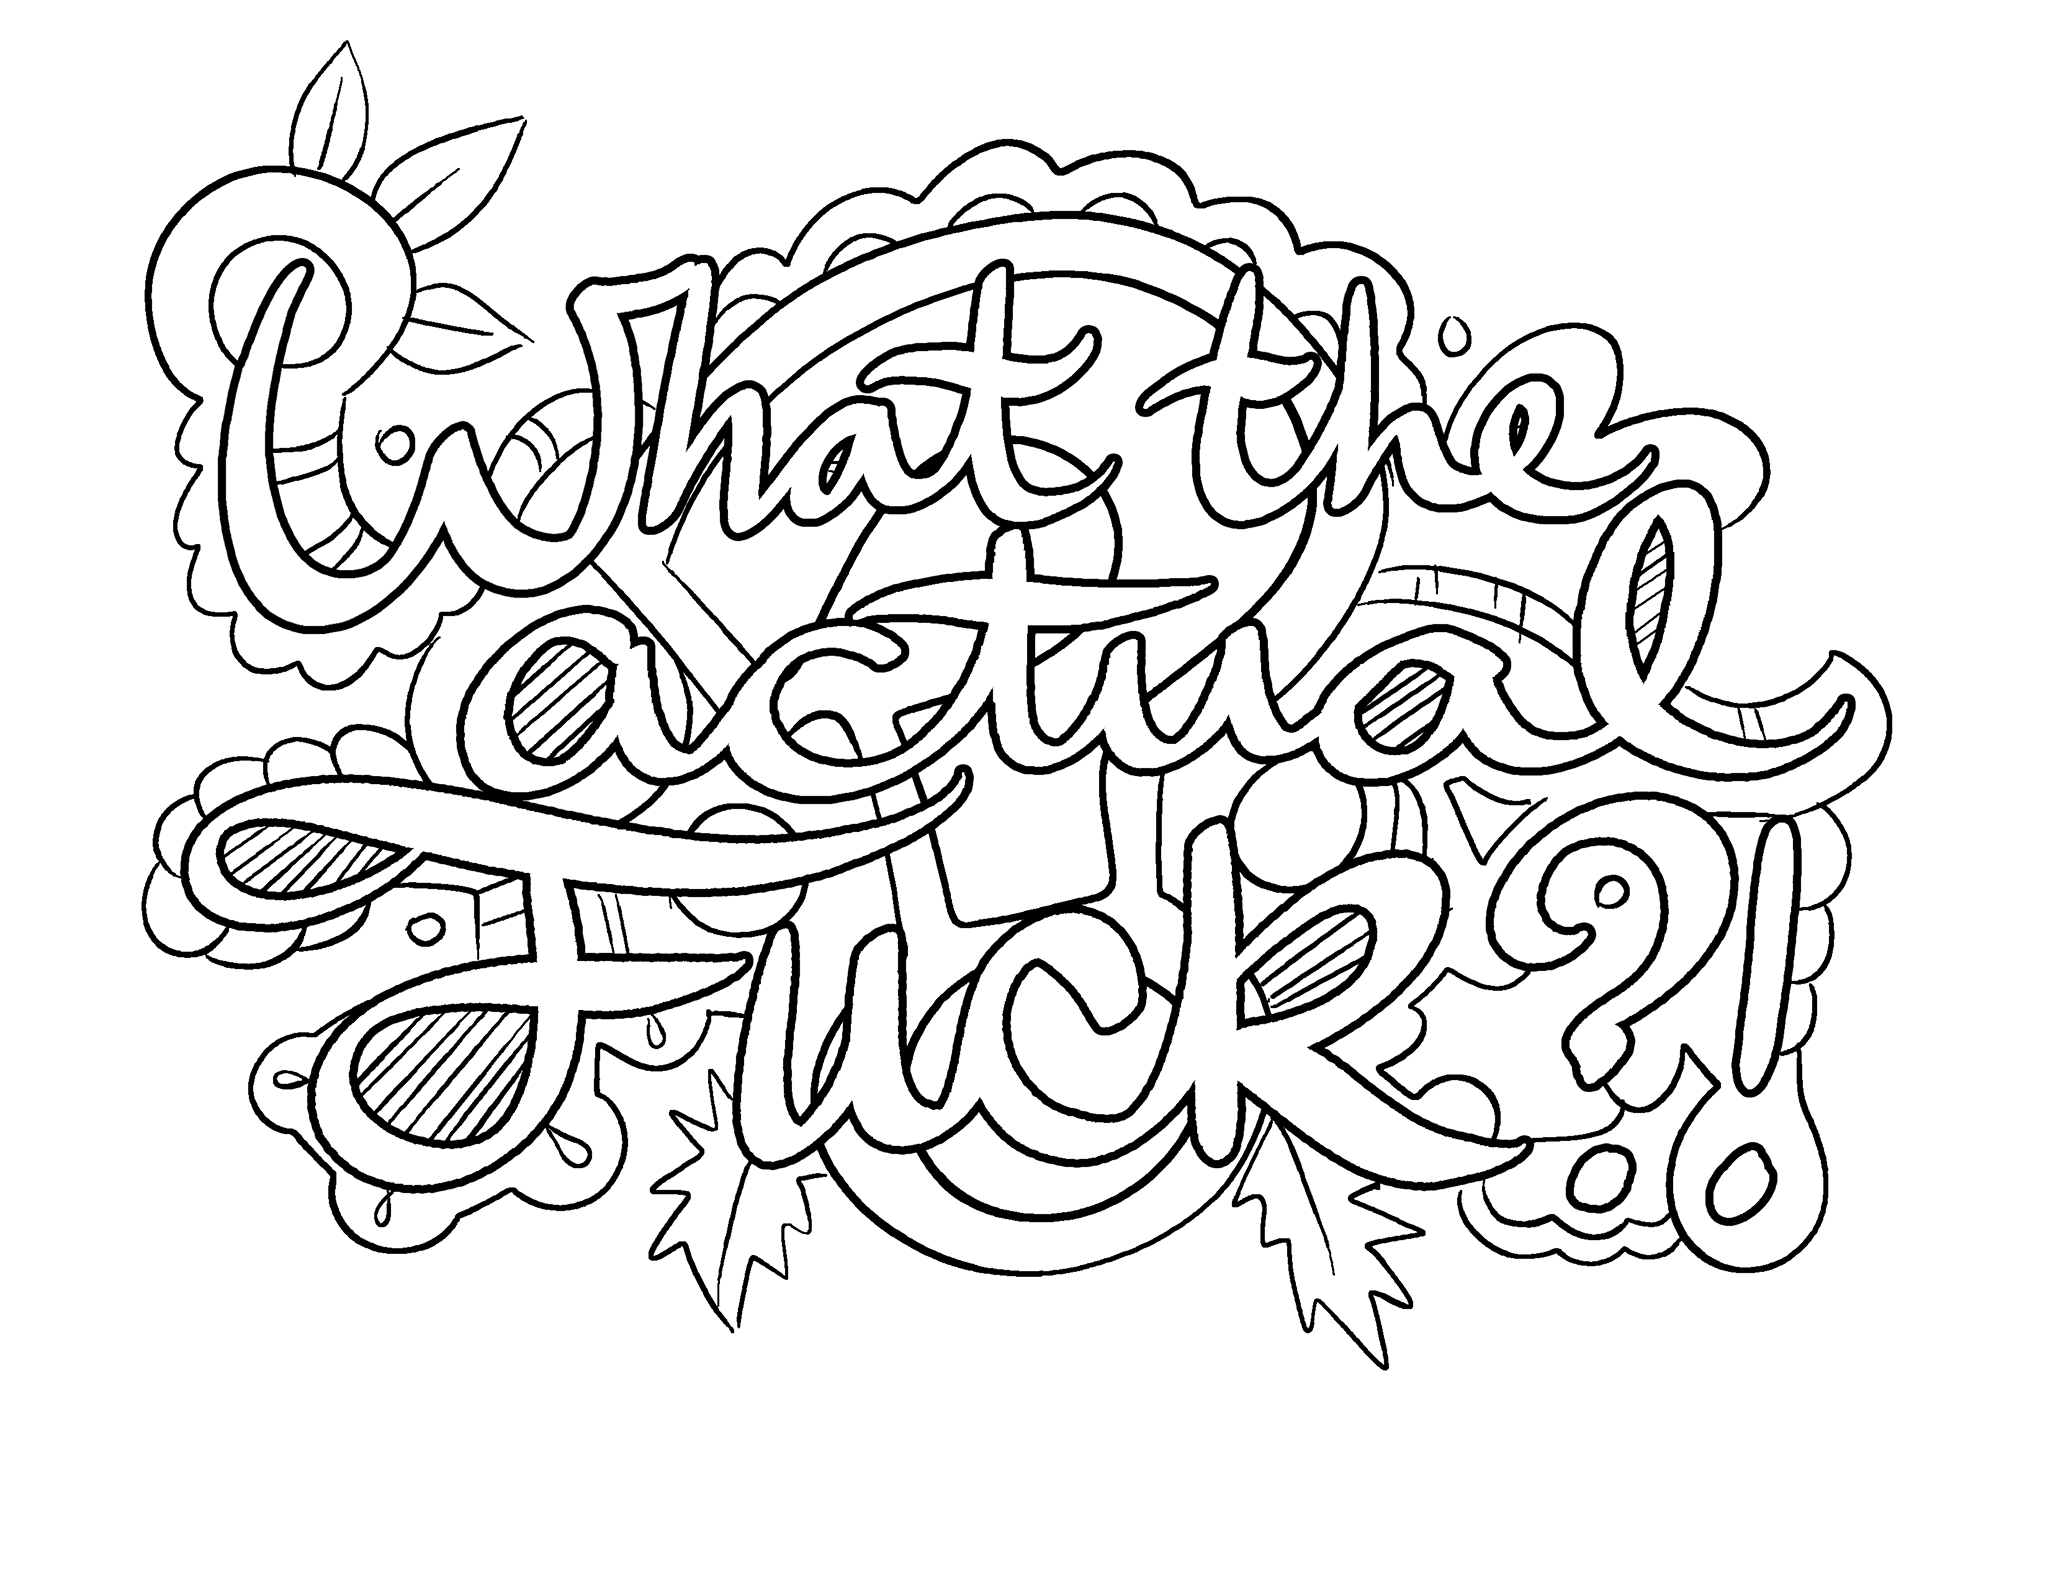 Fancy swear words coloring book - Find This Pin And More On Adult Coloring Book